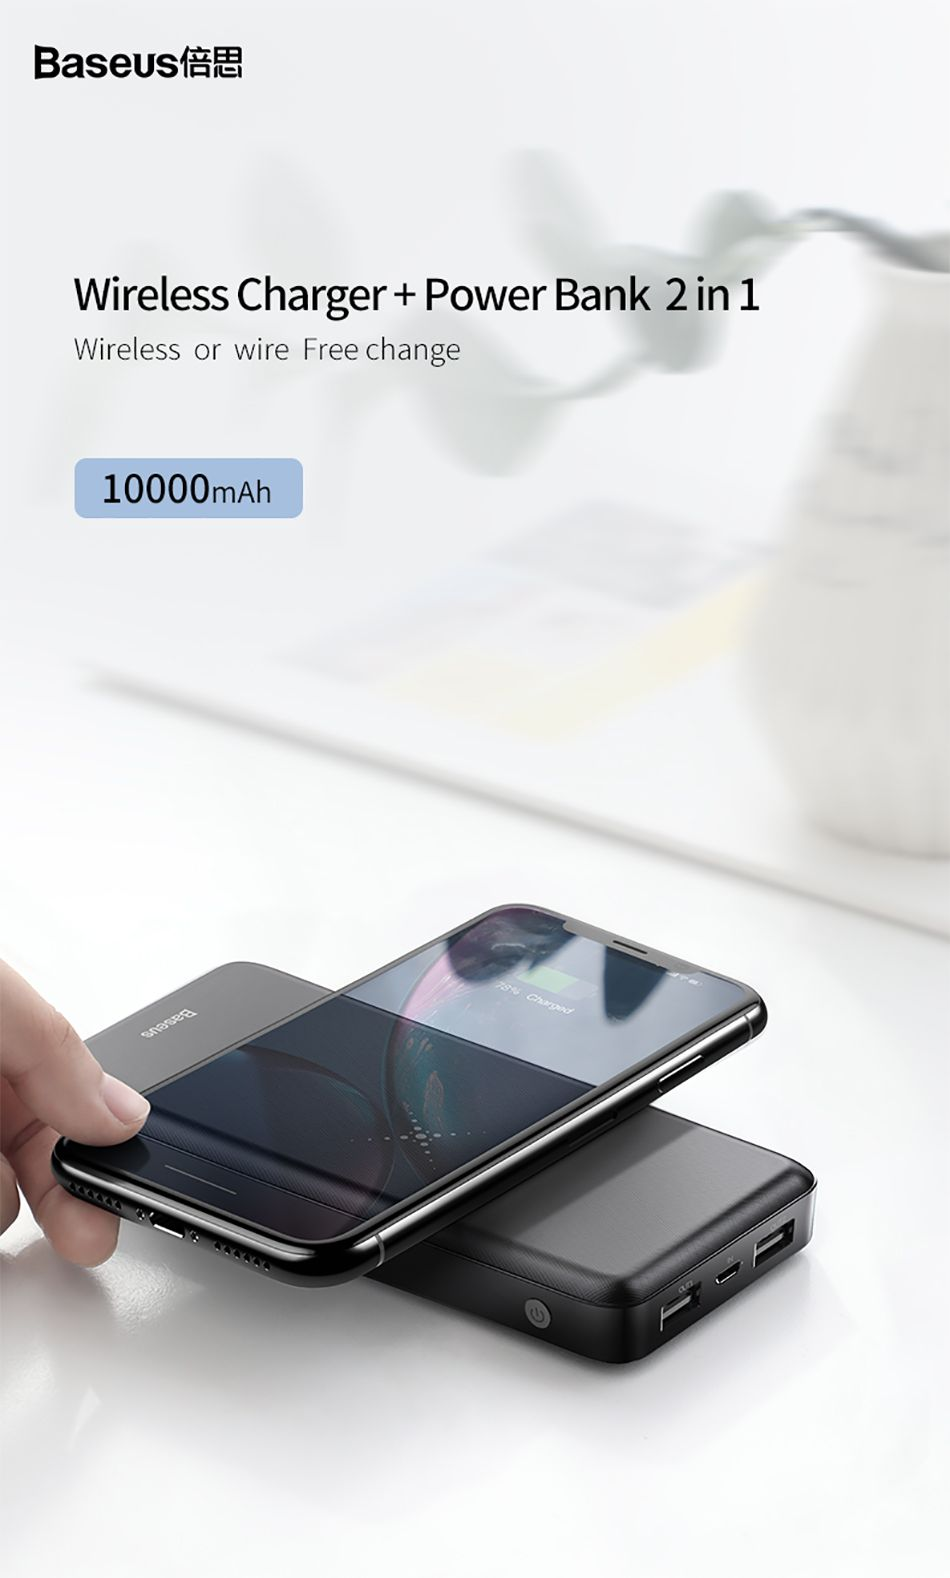 Baseus M36 Wireless Charger Power Bank 10000mah (3)